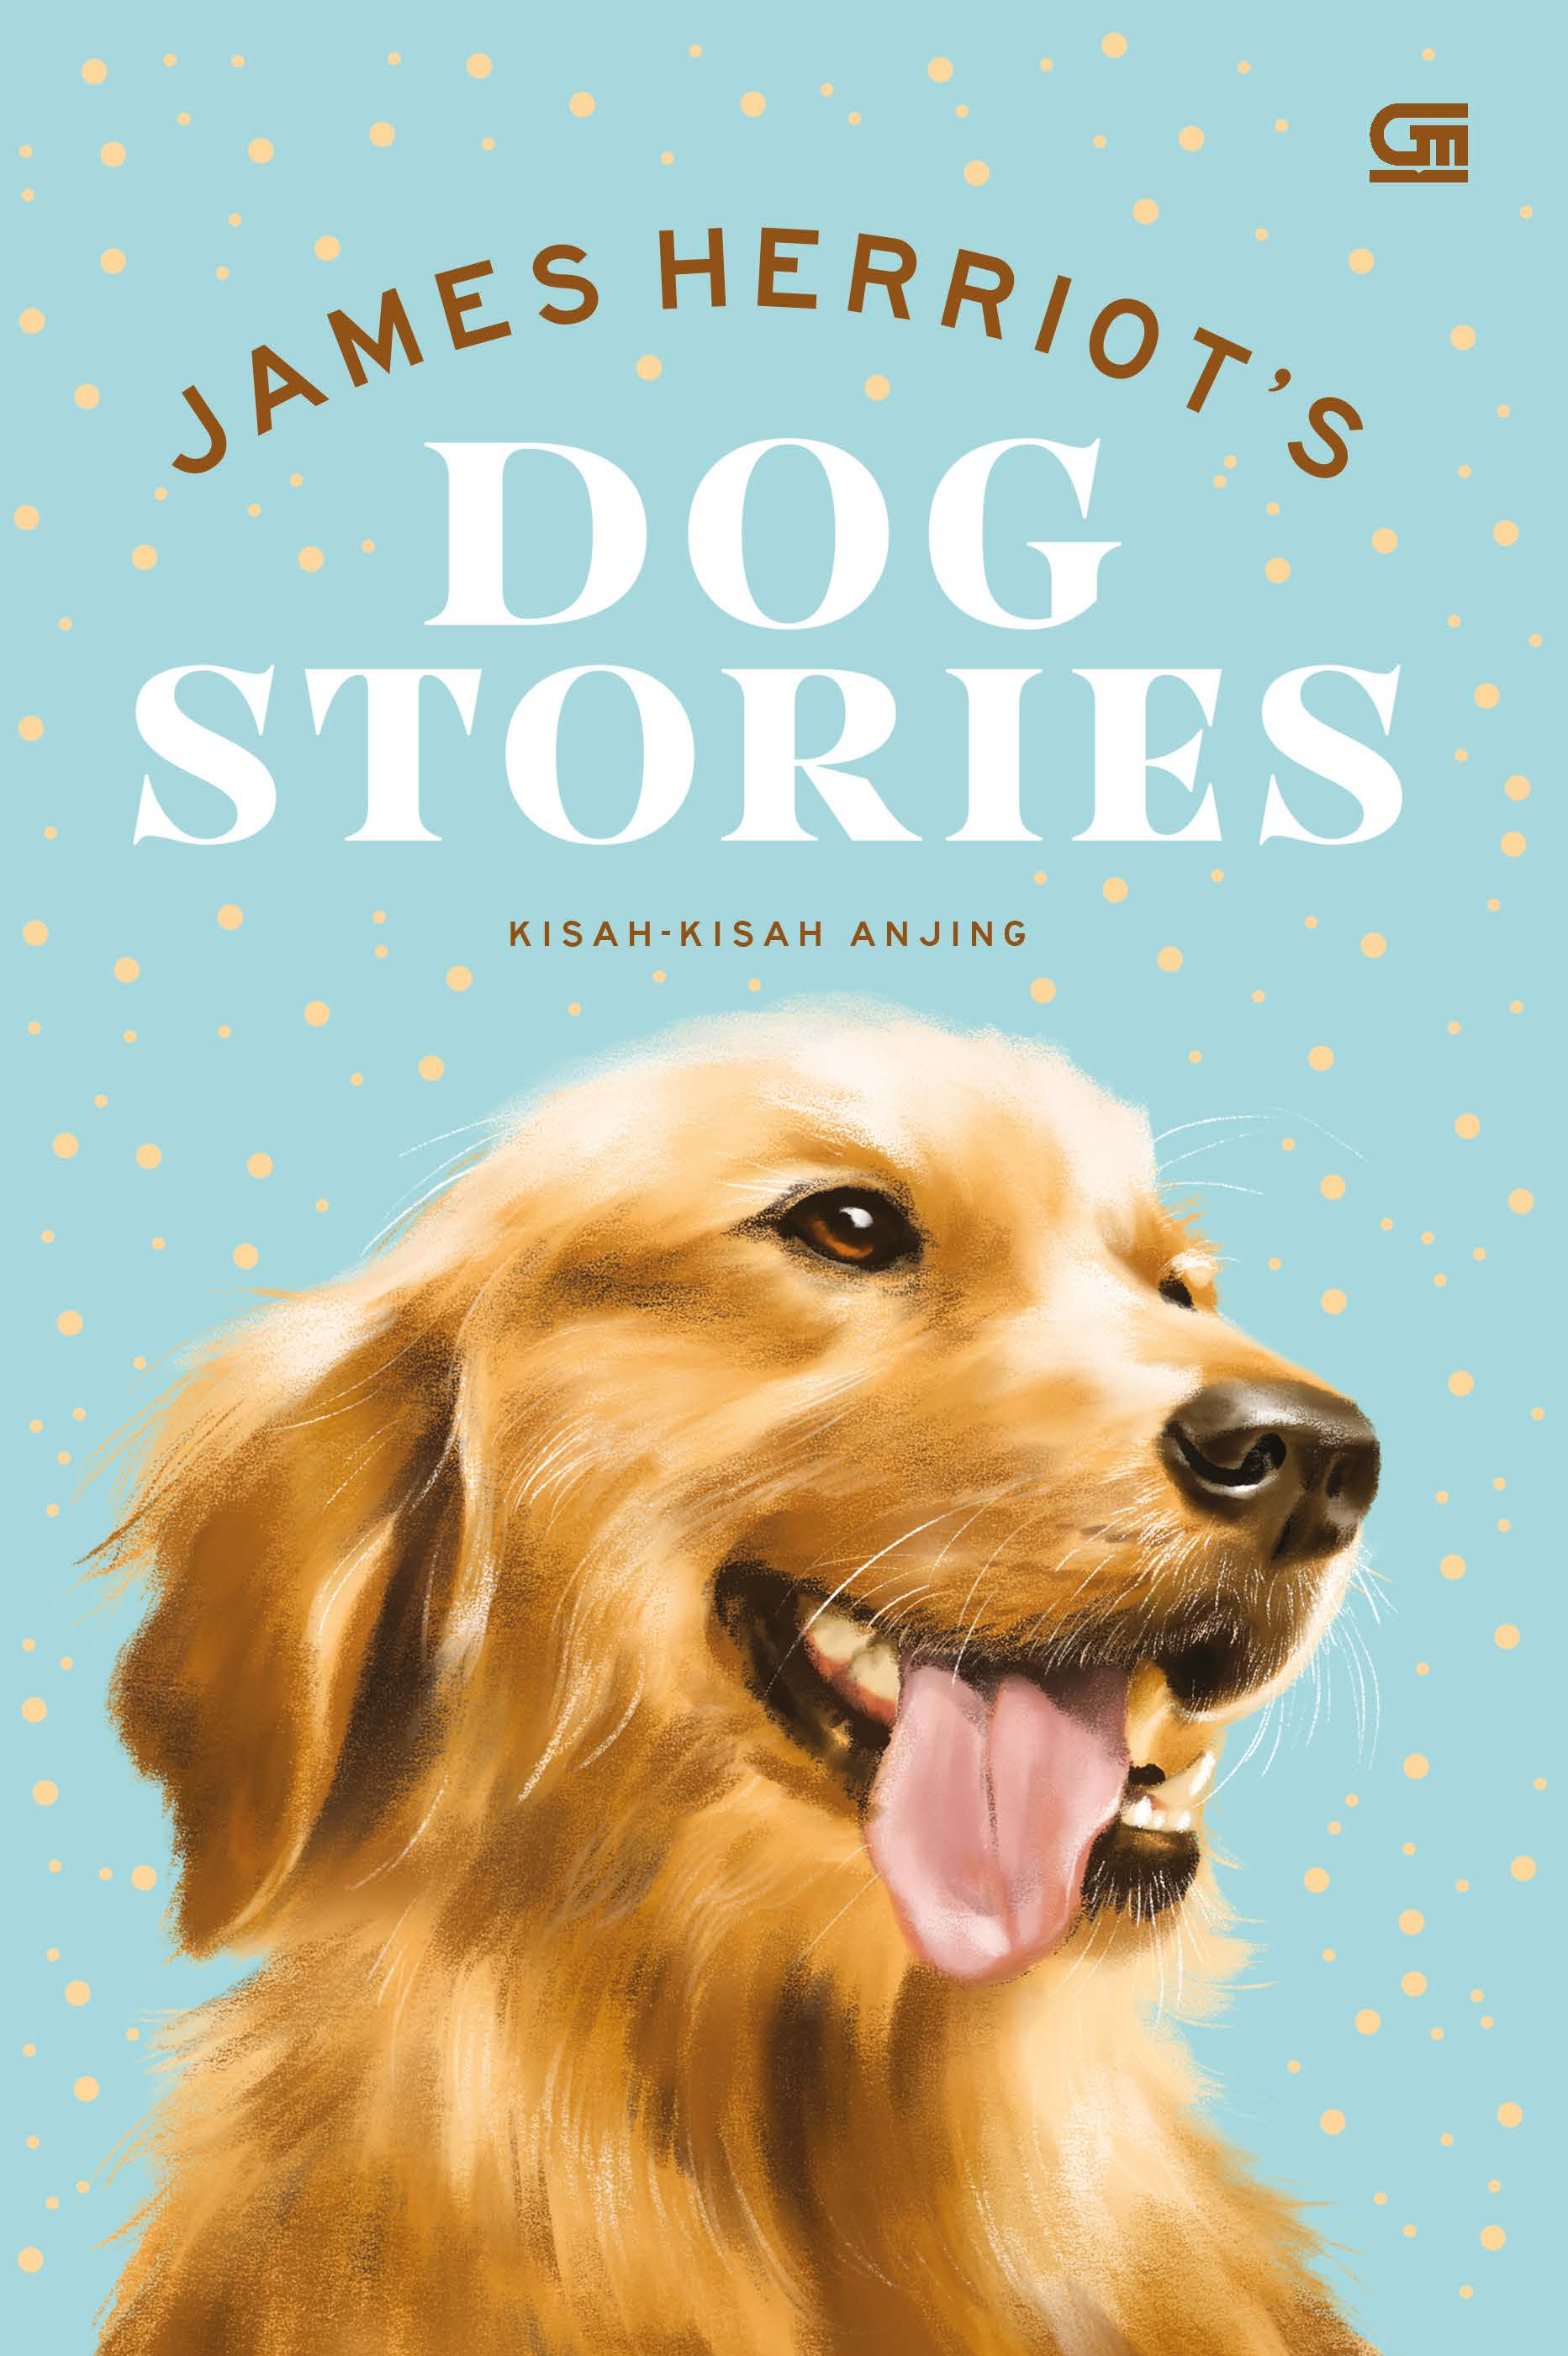 Kisah-Kisah Anjing (Dog Stories)